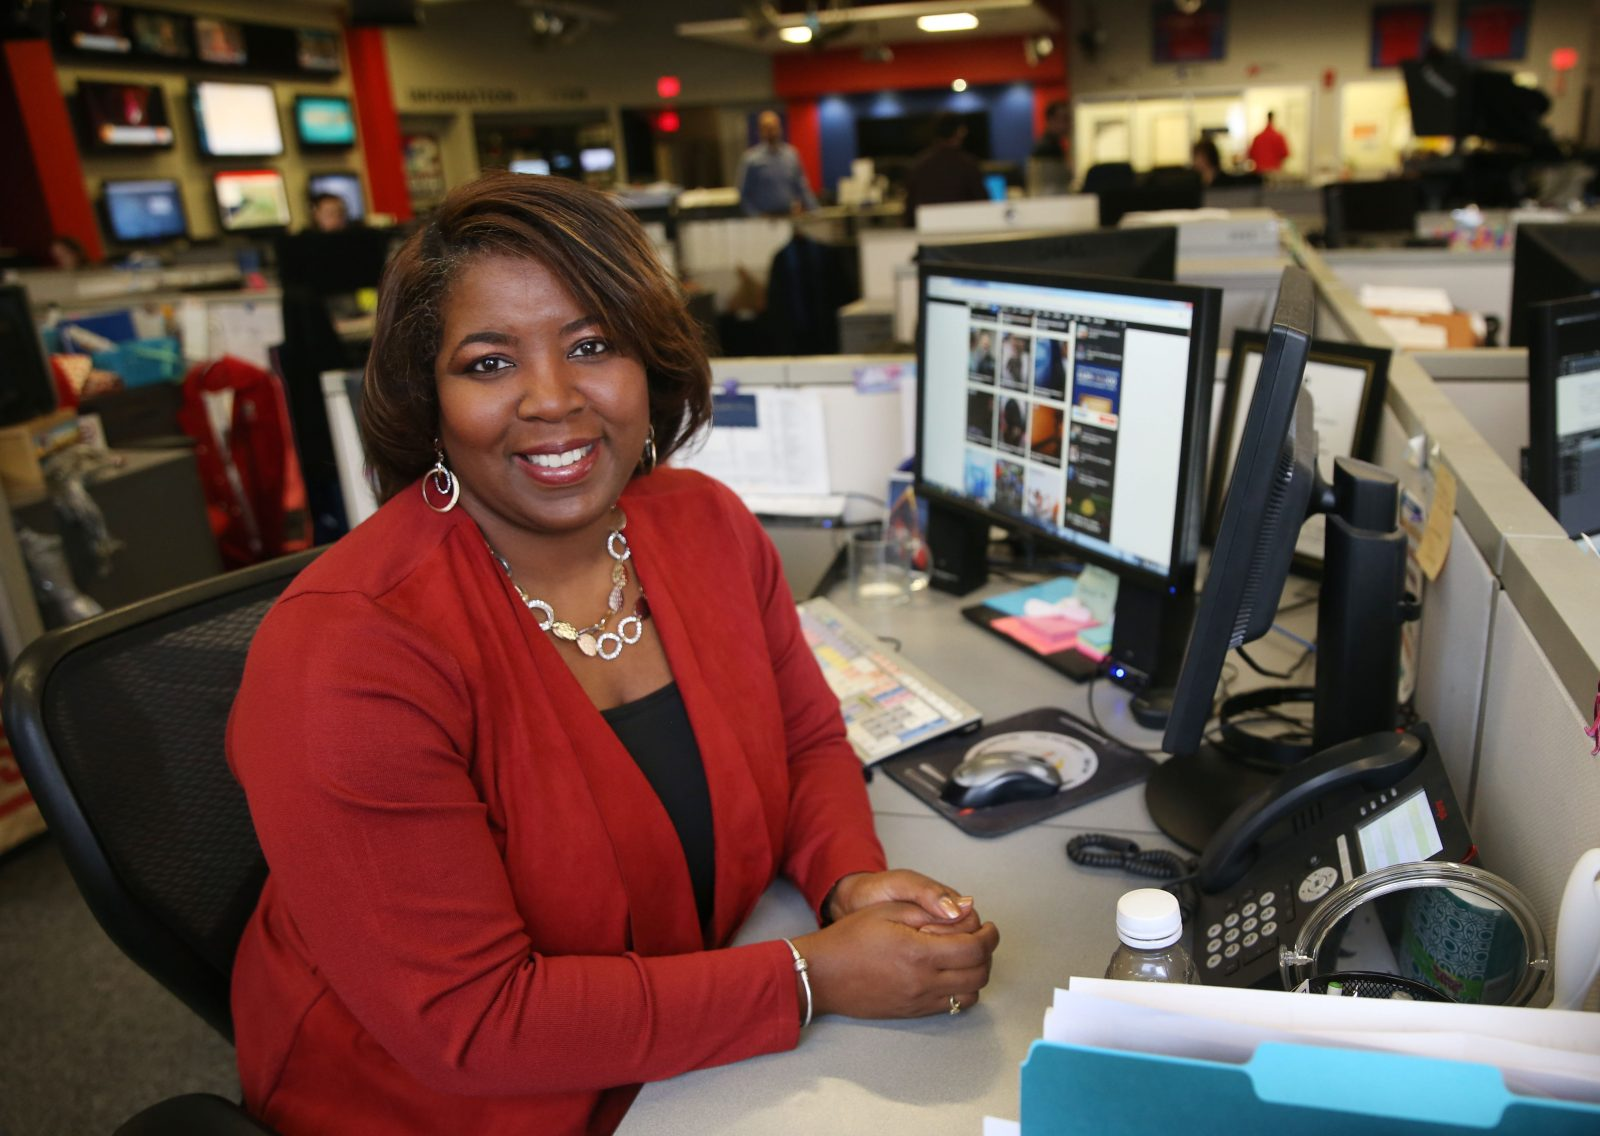 Claudine Ewing, here at her desk at WGRZ, has been a Buffalo braodcaster for 25 years.  (Sharon Cantillon/Buffalo News)